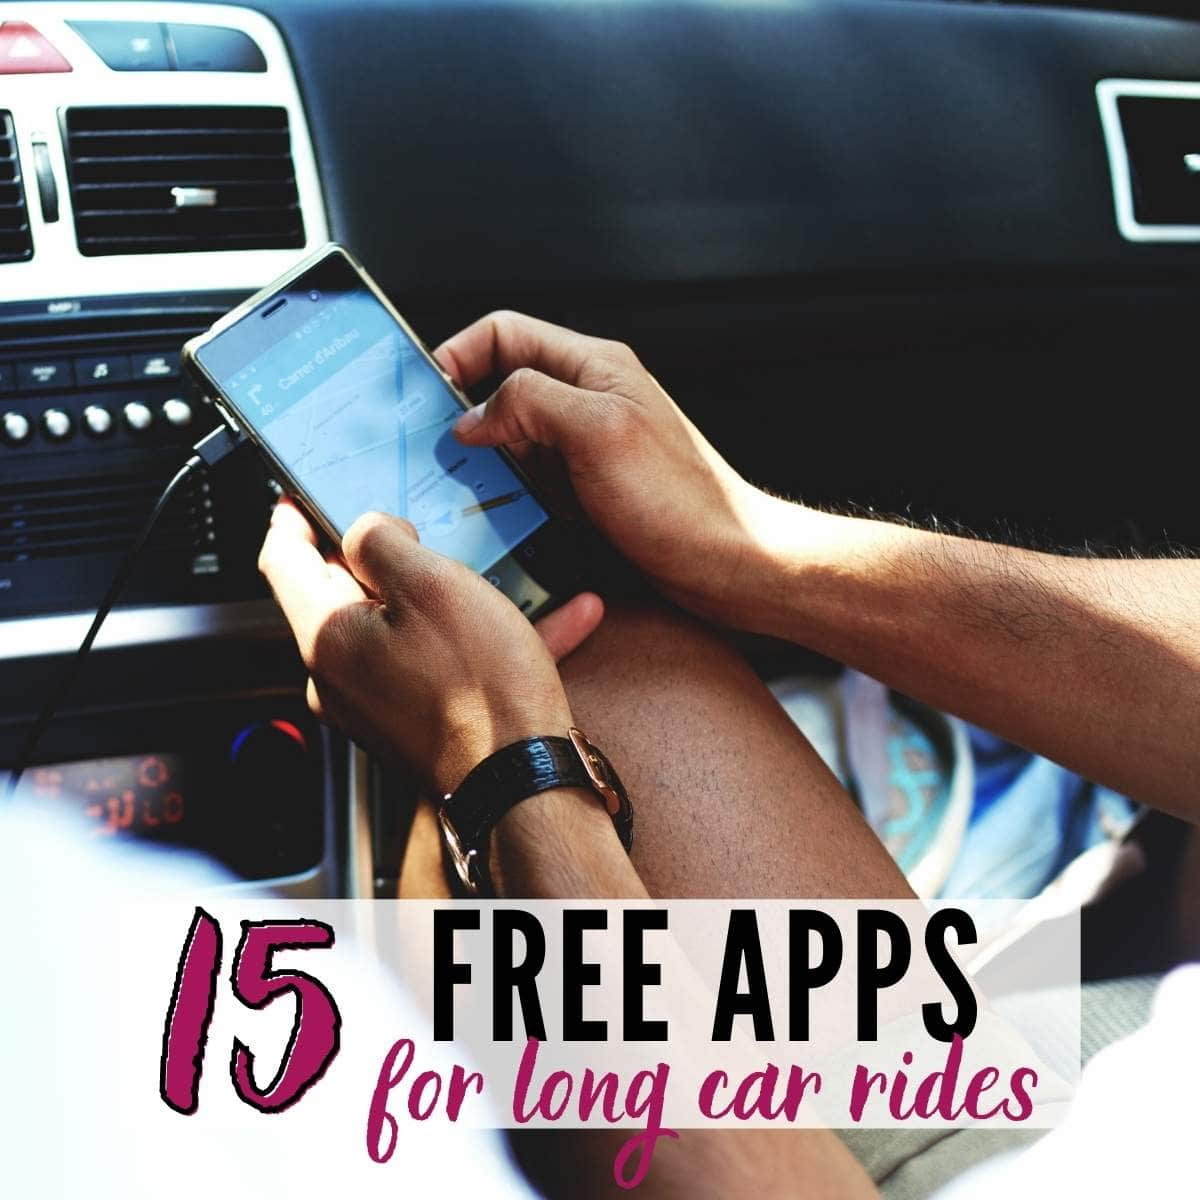 teen boy using a smart phone in a car with 15 Free Apps for Long Car Rides graphic overlay